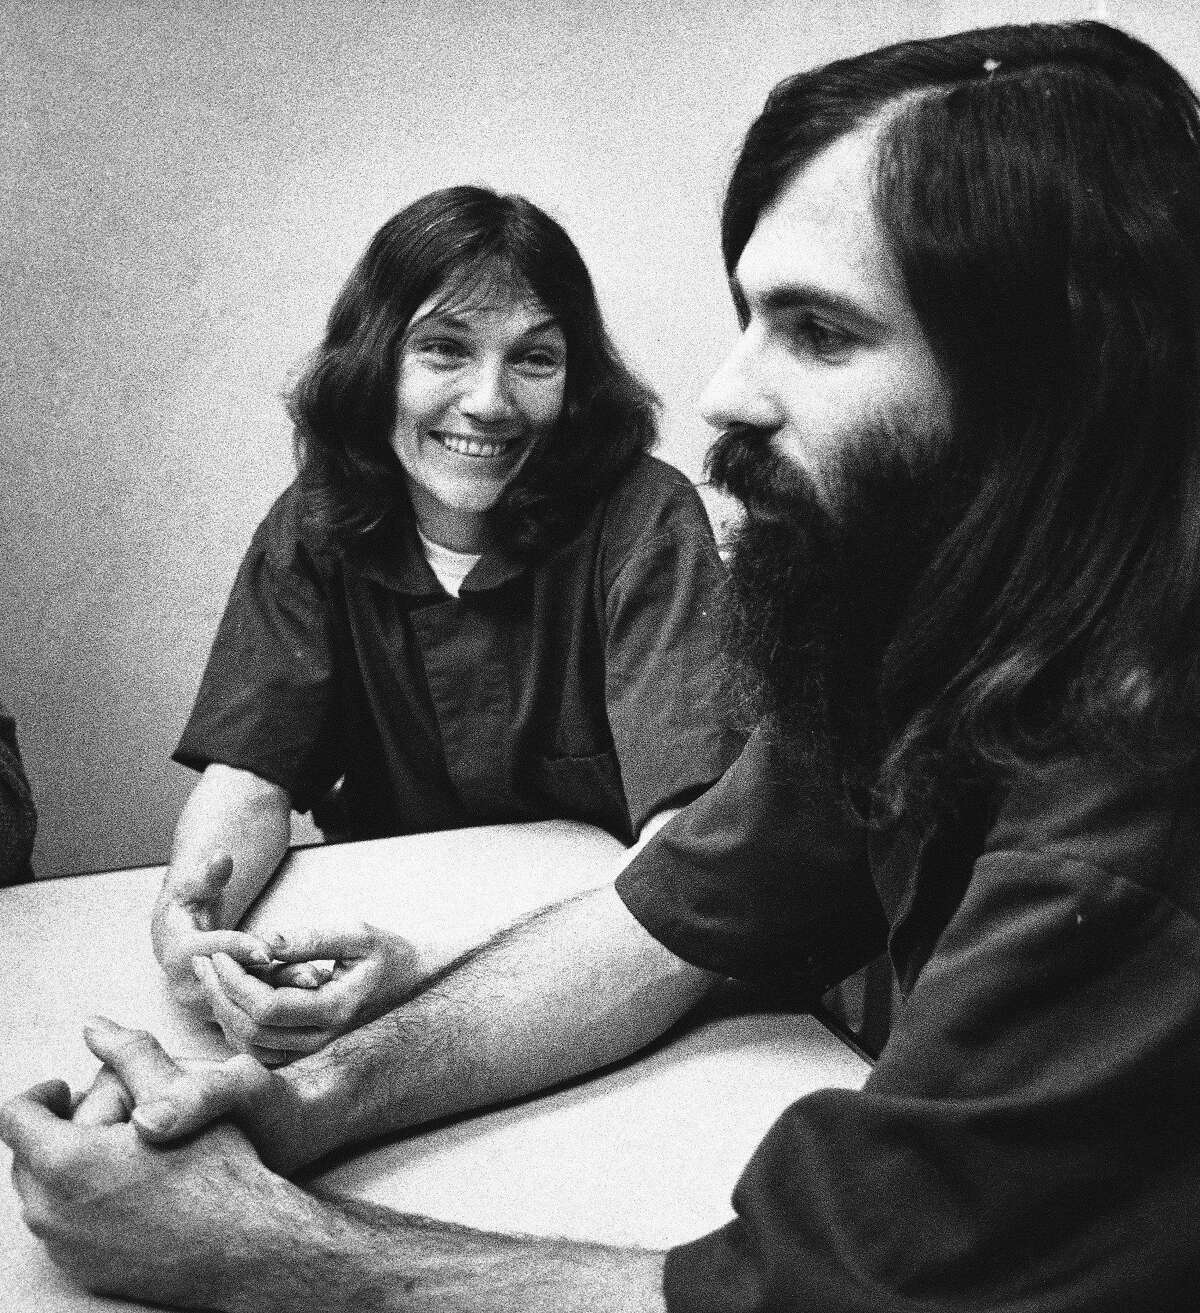 Michael Carson, 32, and his wife, Suzan, shown on April 29, 1983, confessed to killing two people in addition to a murder they were already charged with. Their confessions came during a five-hour interview with police and news reporters.